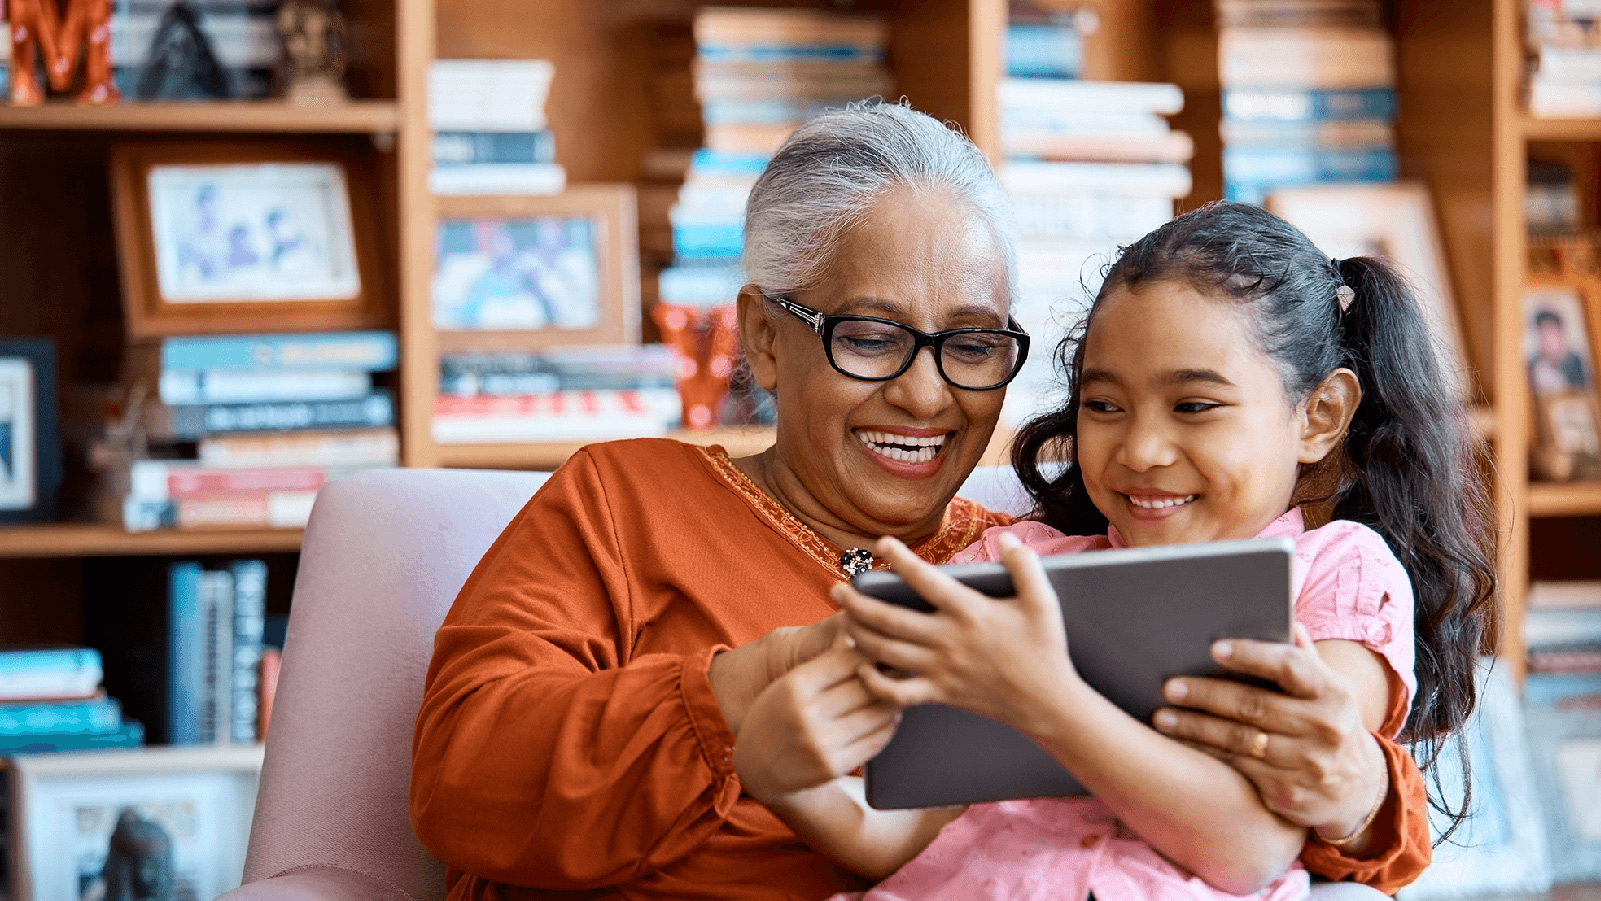 Grandma and her granddaughter smiling and looking at a tablet.